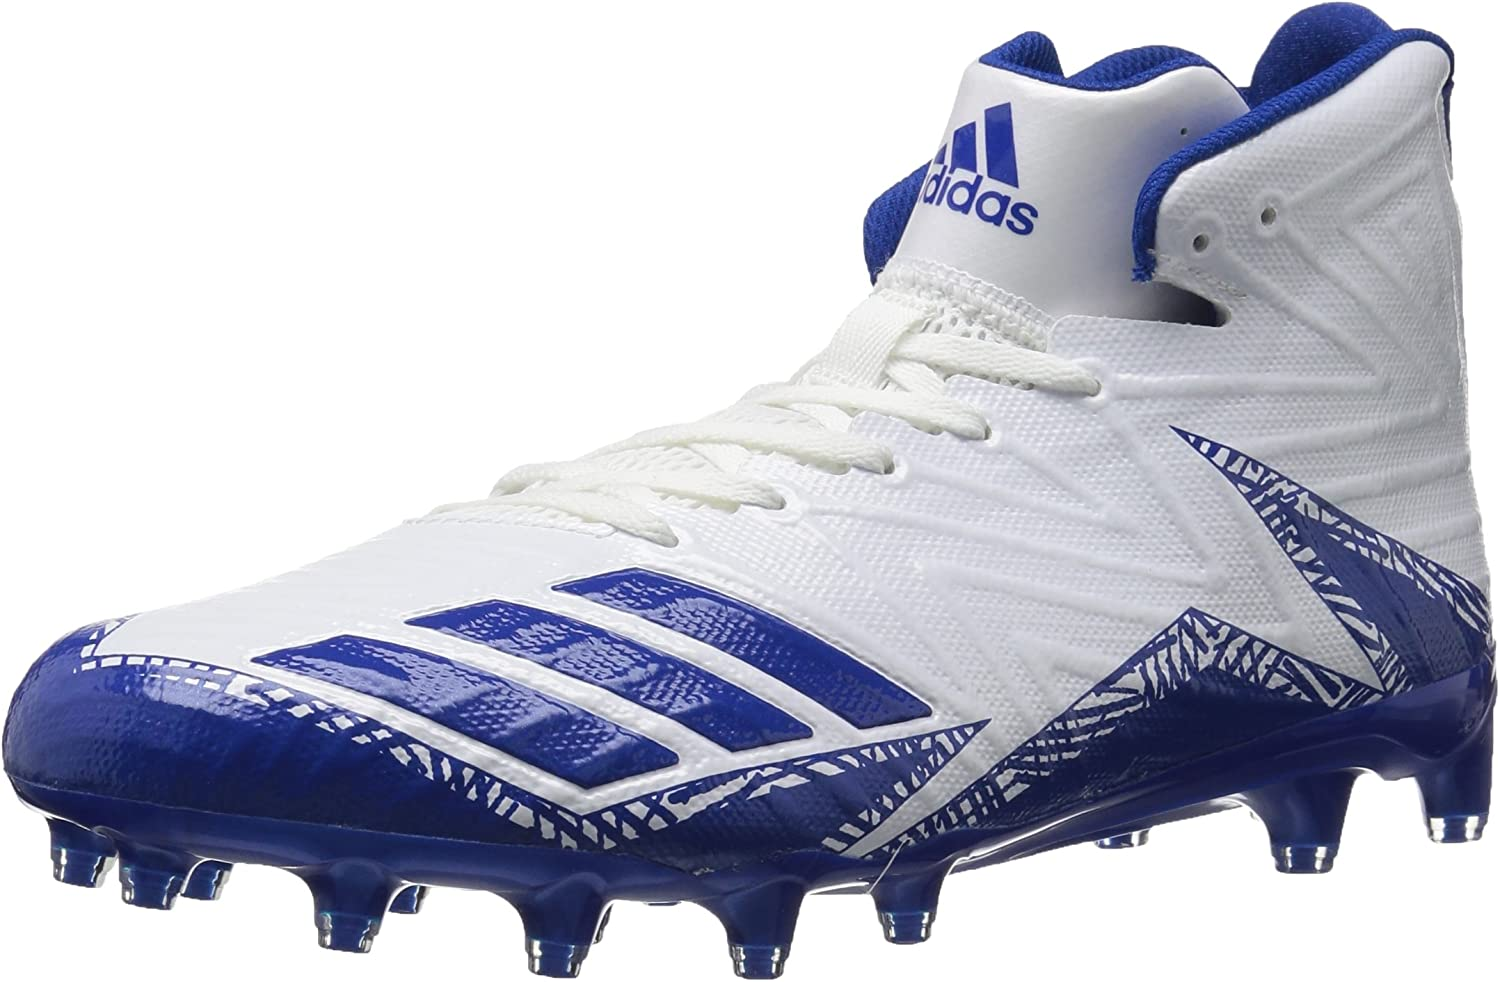 Adidas herrar Freak X bilbon Mid Football Football Football skor, vit Collegiate Royal, 9 Medium US  perfekt